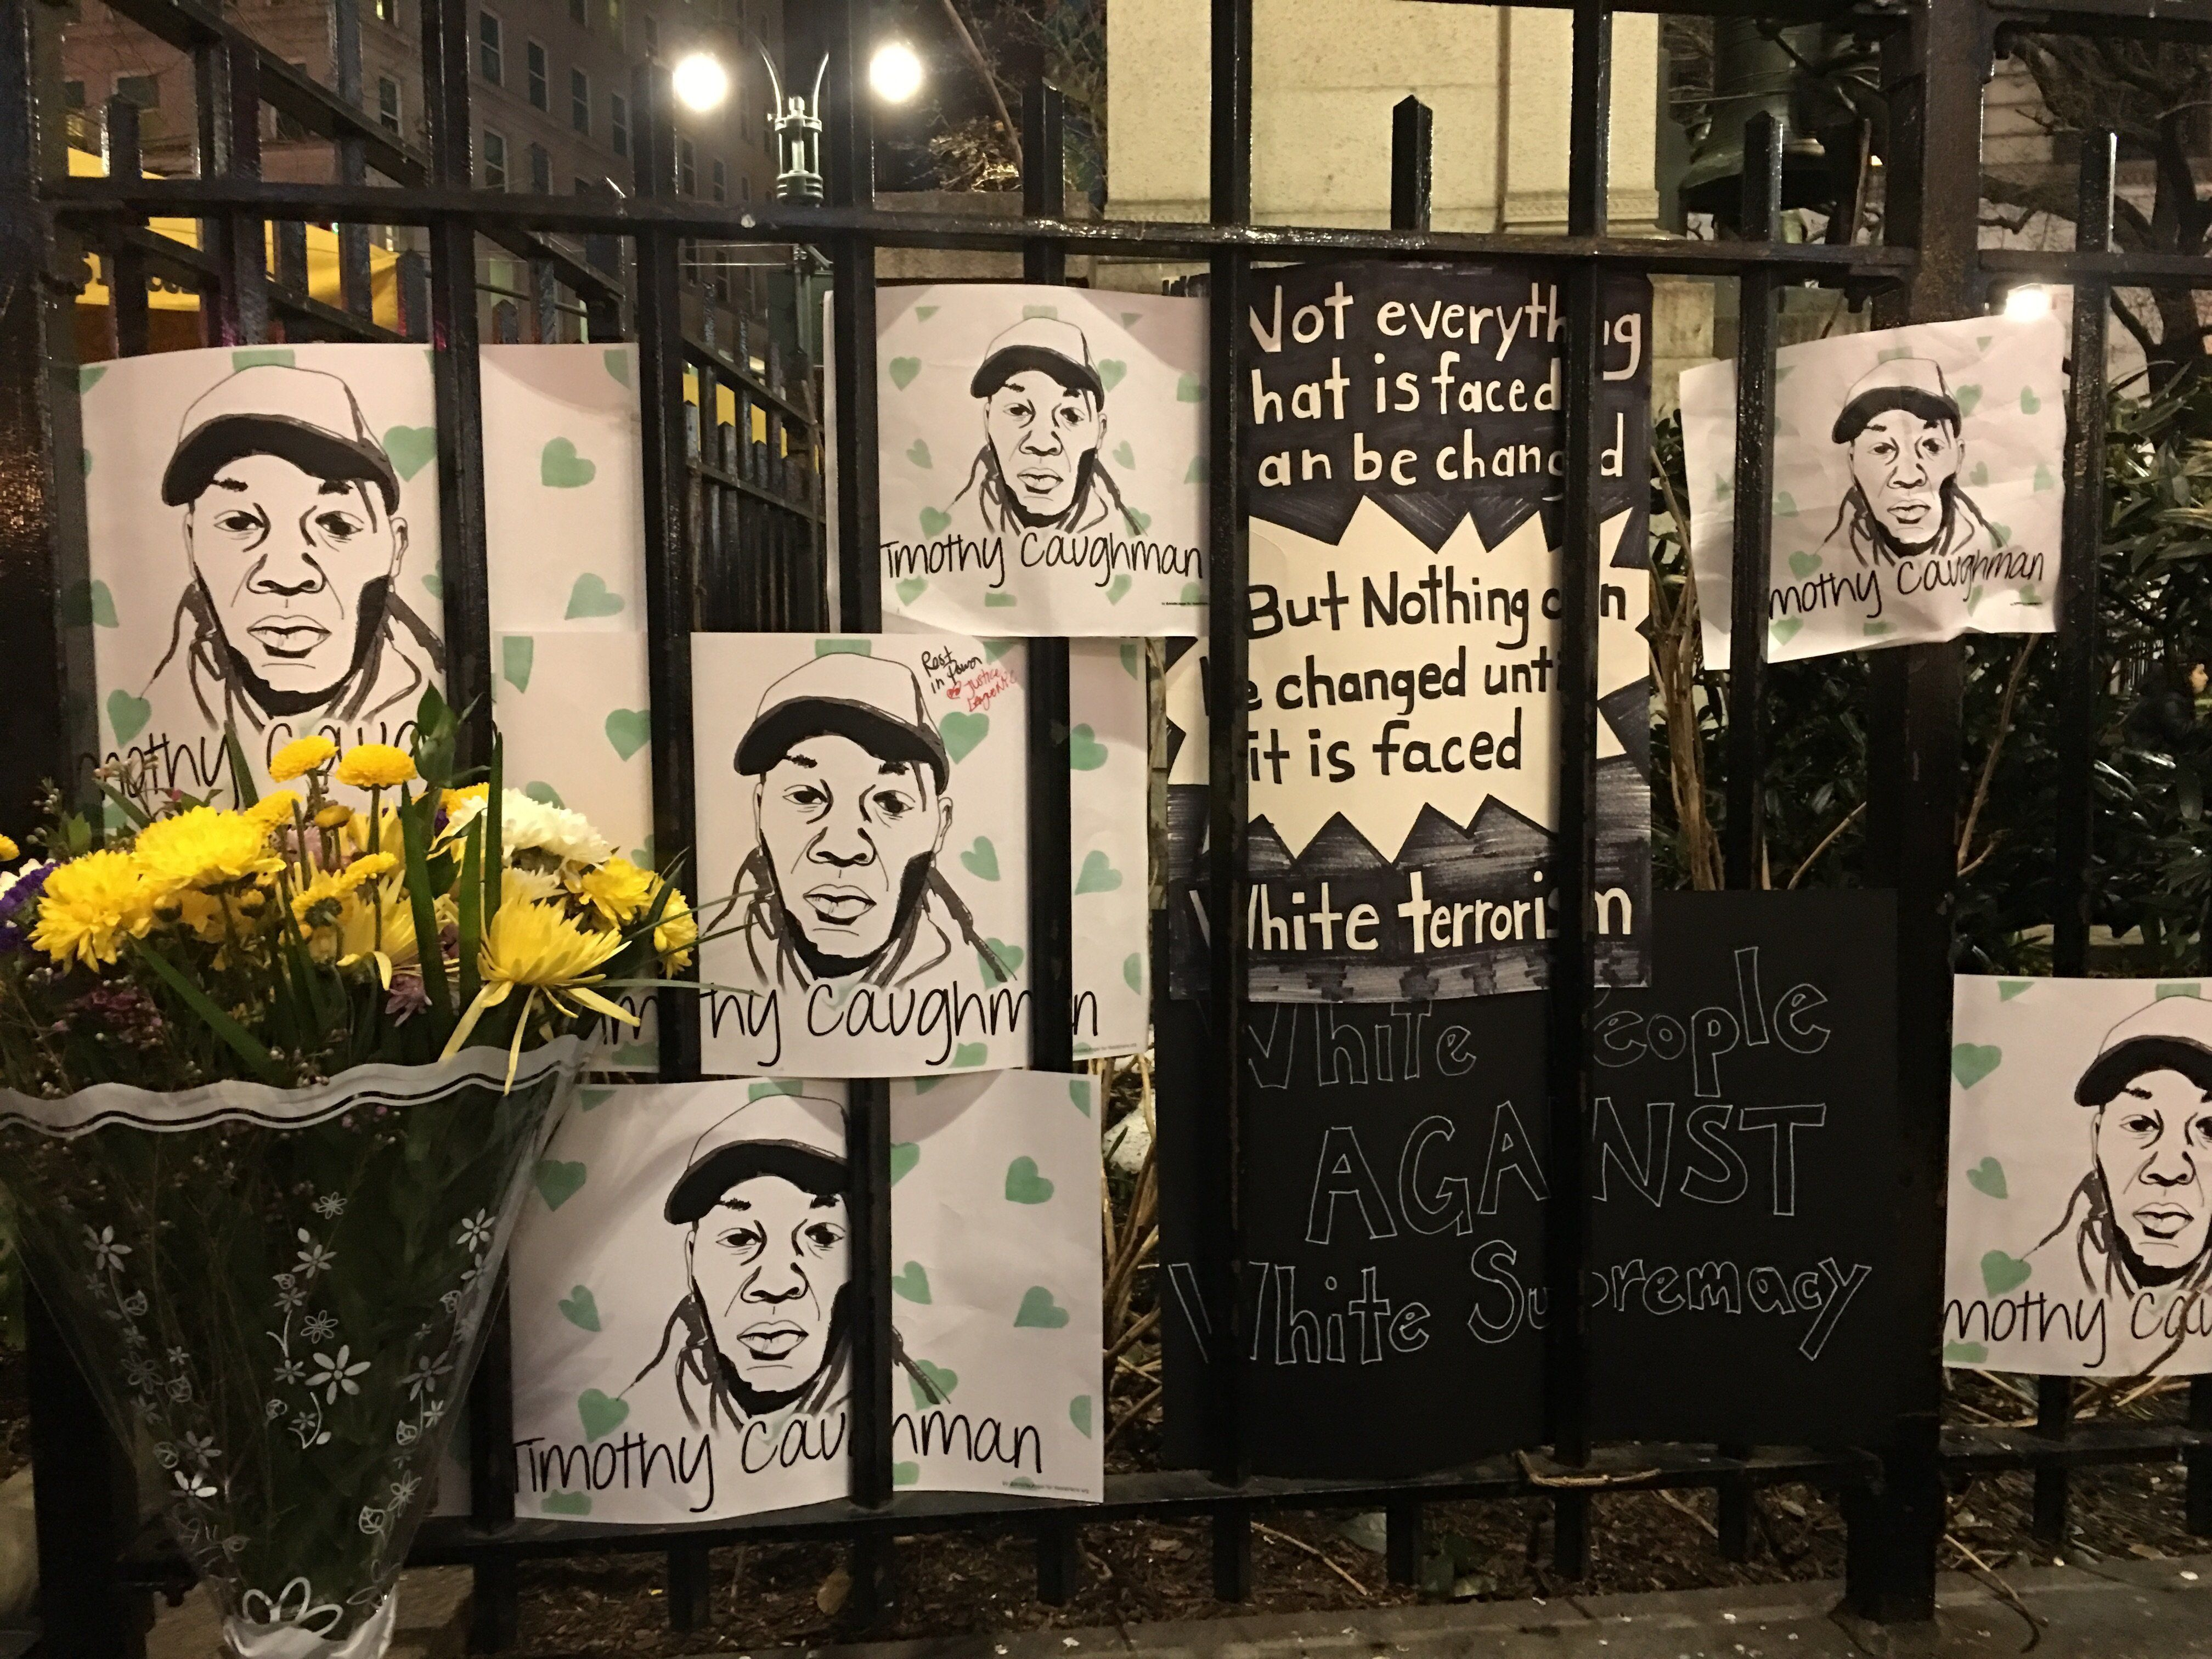 Protesters on Friday night made a makeshift memorial in memory Timothy Caughman -- a black man killed by a white supremacist.